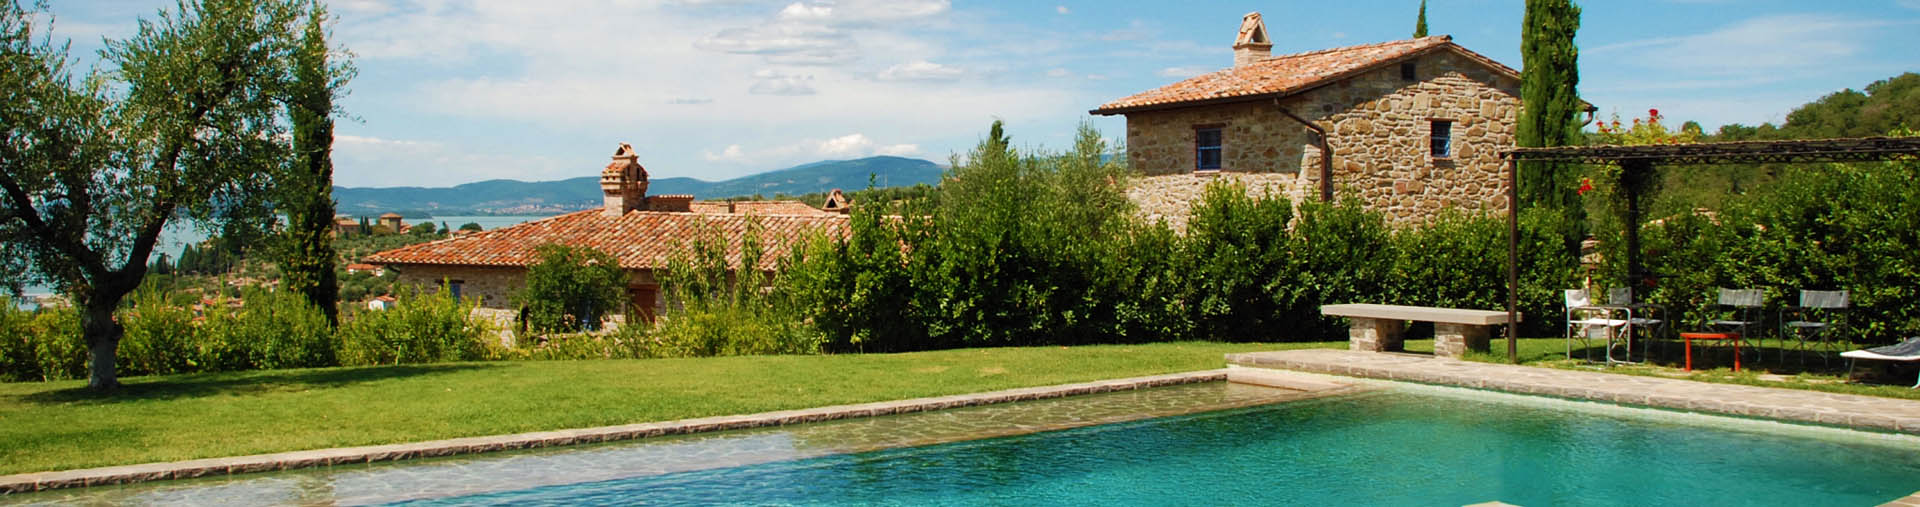 Villa Spaccasassi, Umbria|Bring back the welfare among the landscape of Umbria with this beautiful villa feature in the green